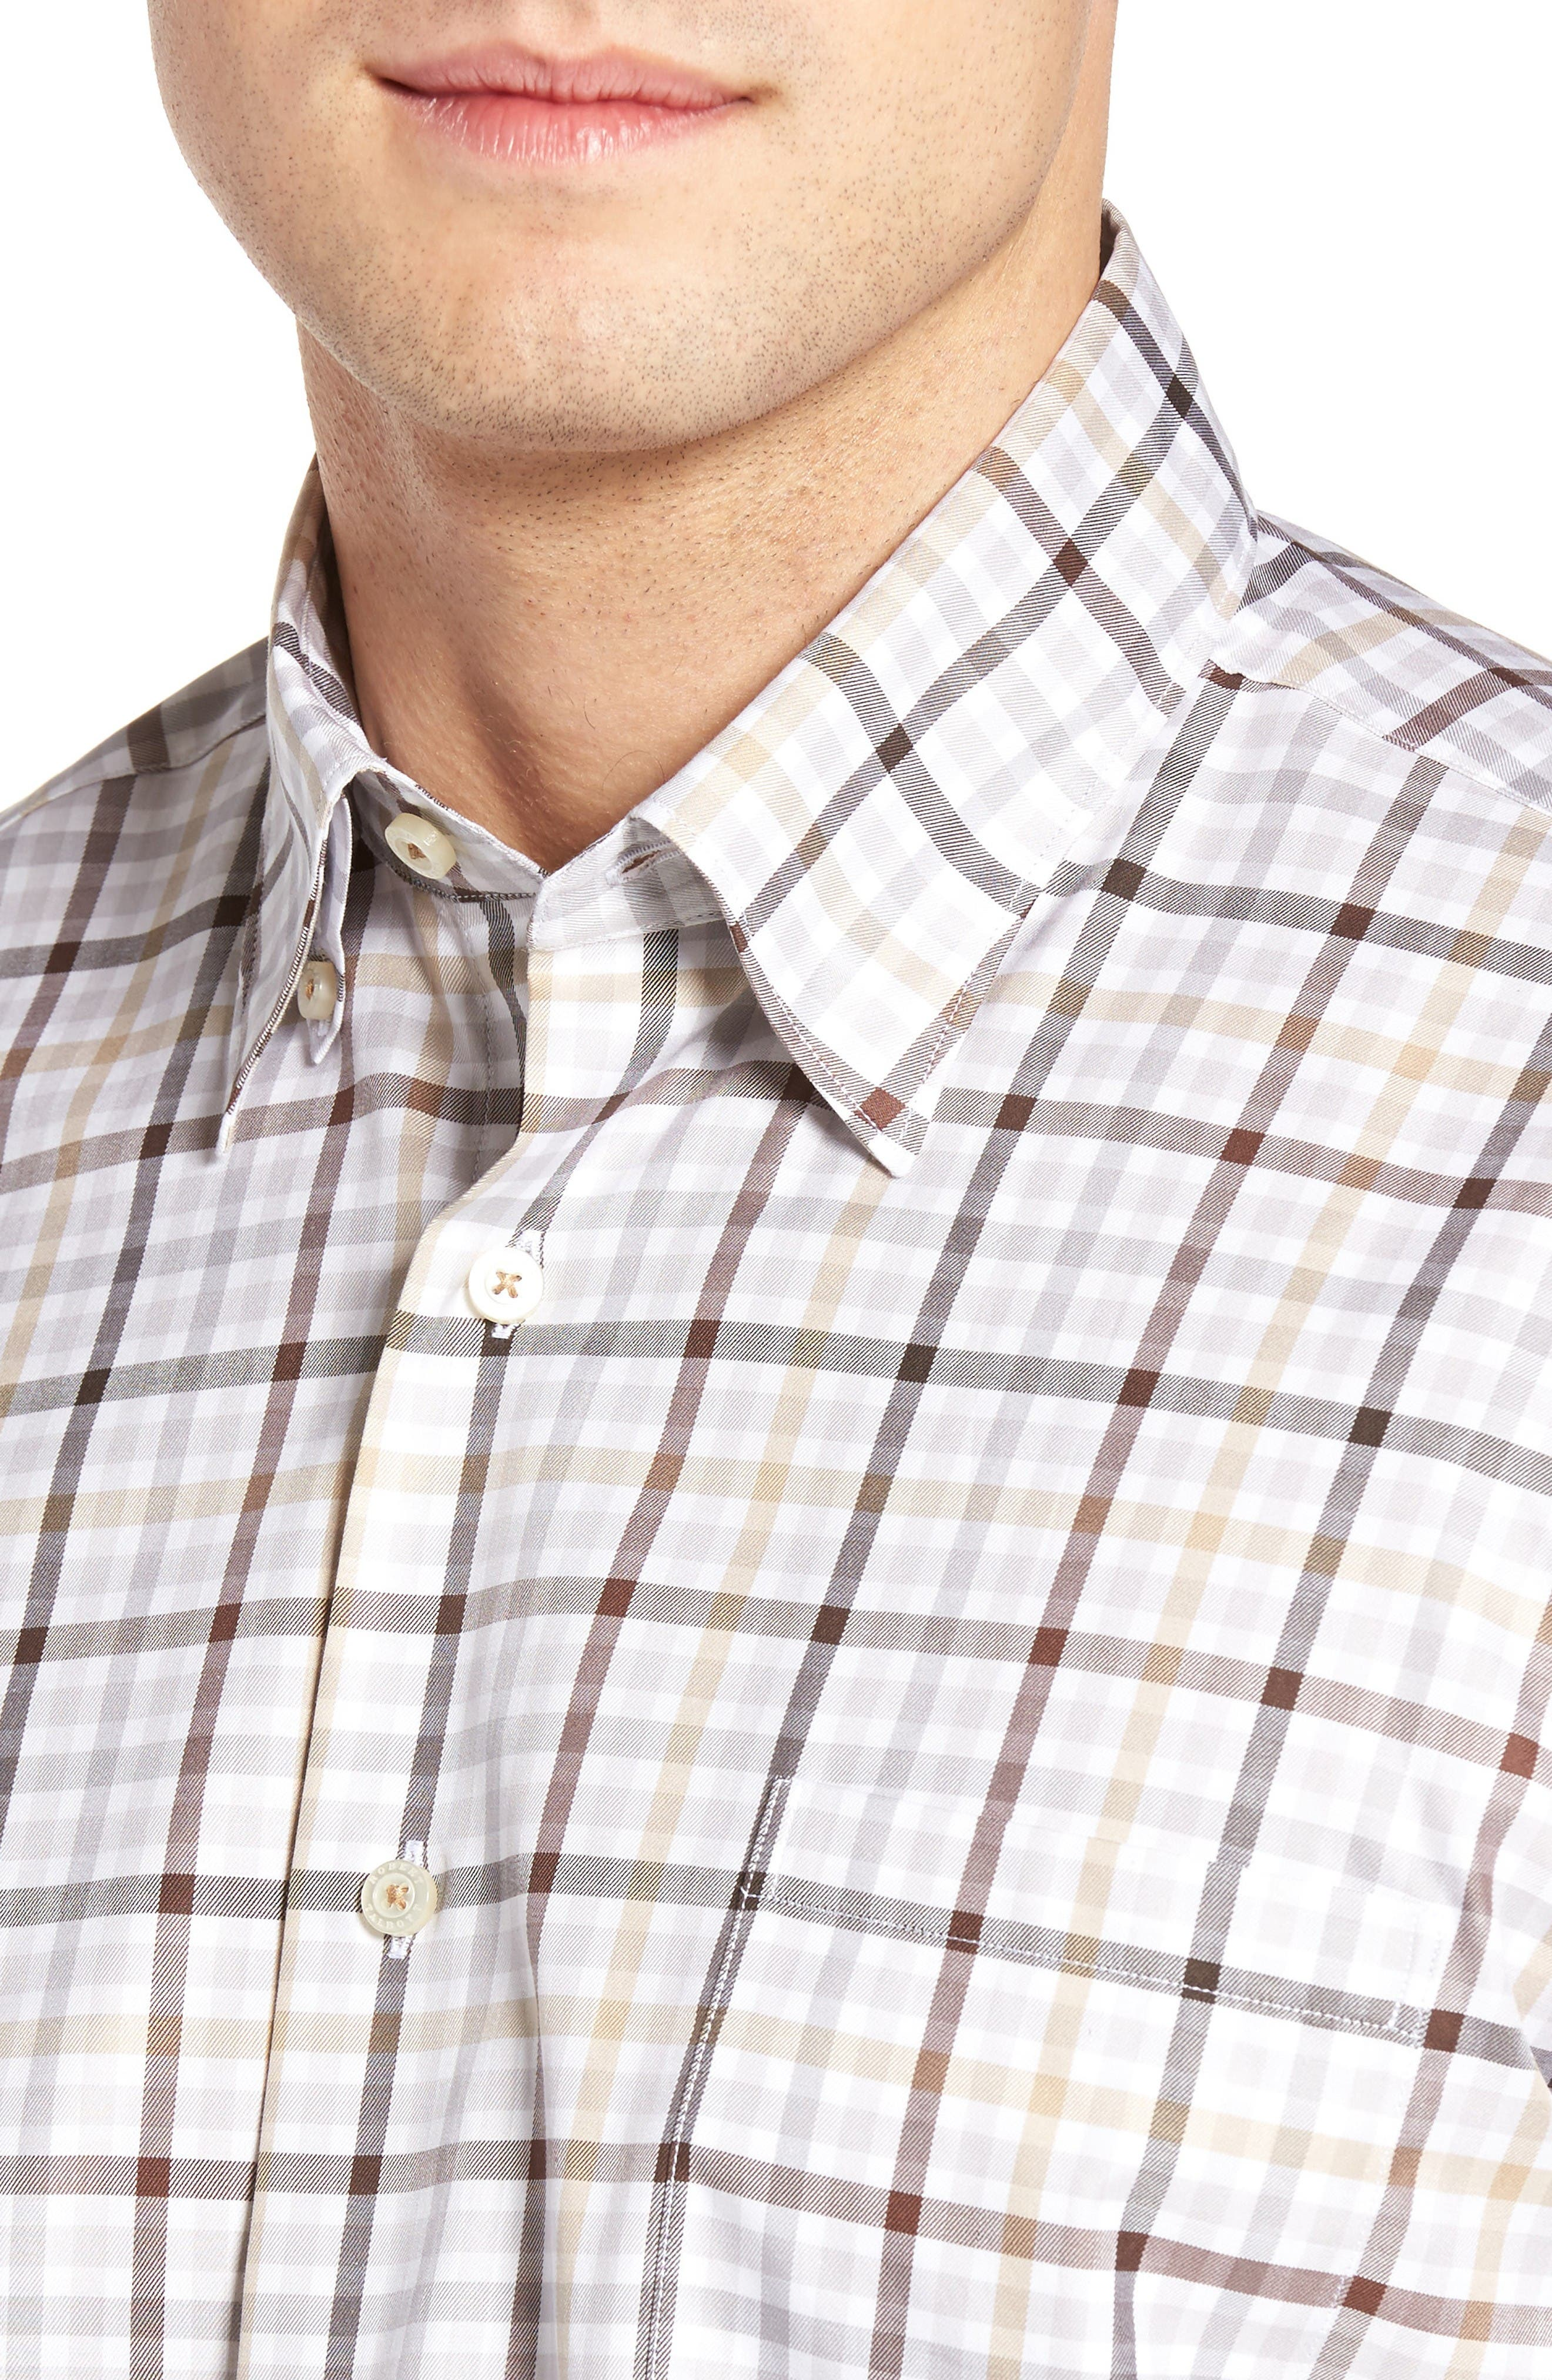 Anderson Classic Fit Plaid Micro Twill Sport Shirt,                             Alternate thumbnail 4, color,                             201